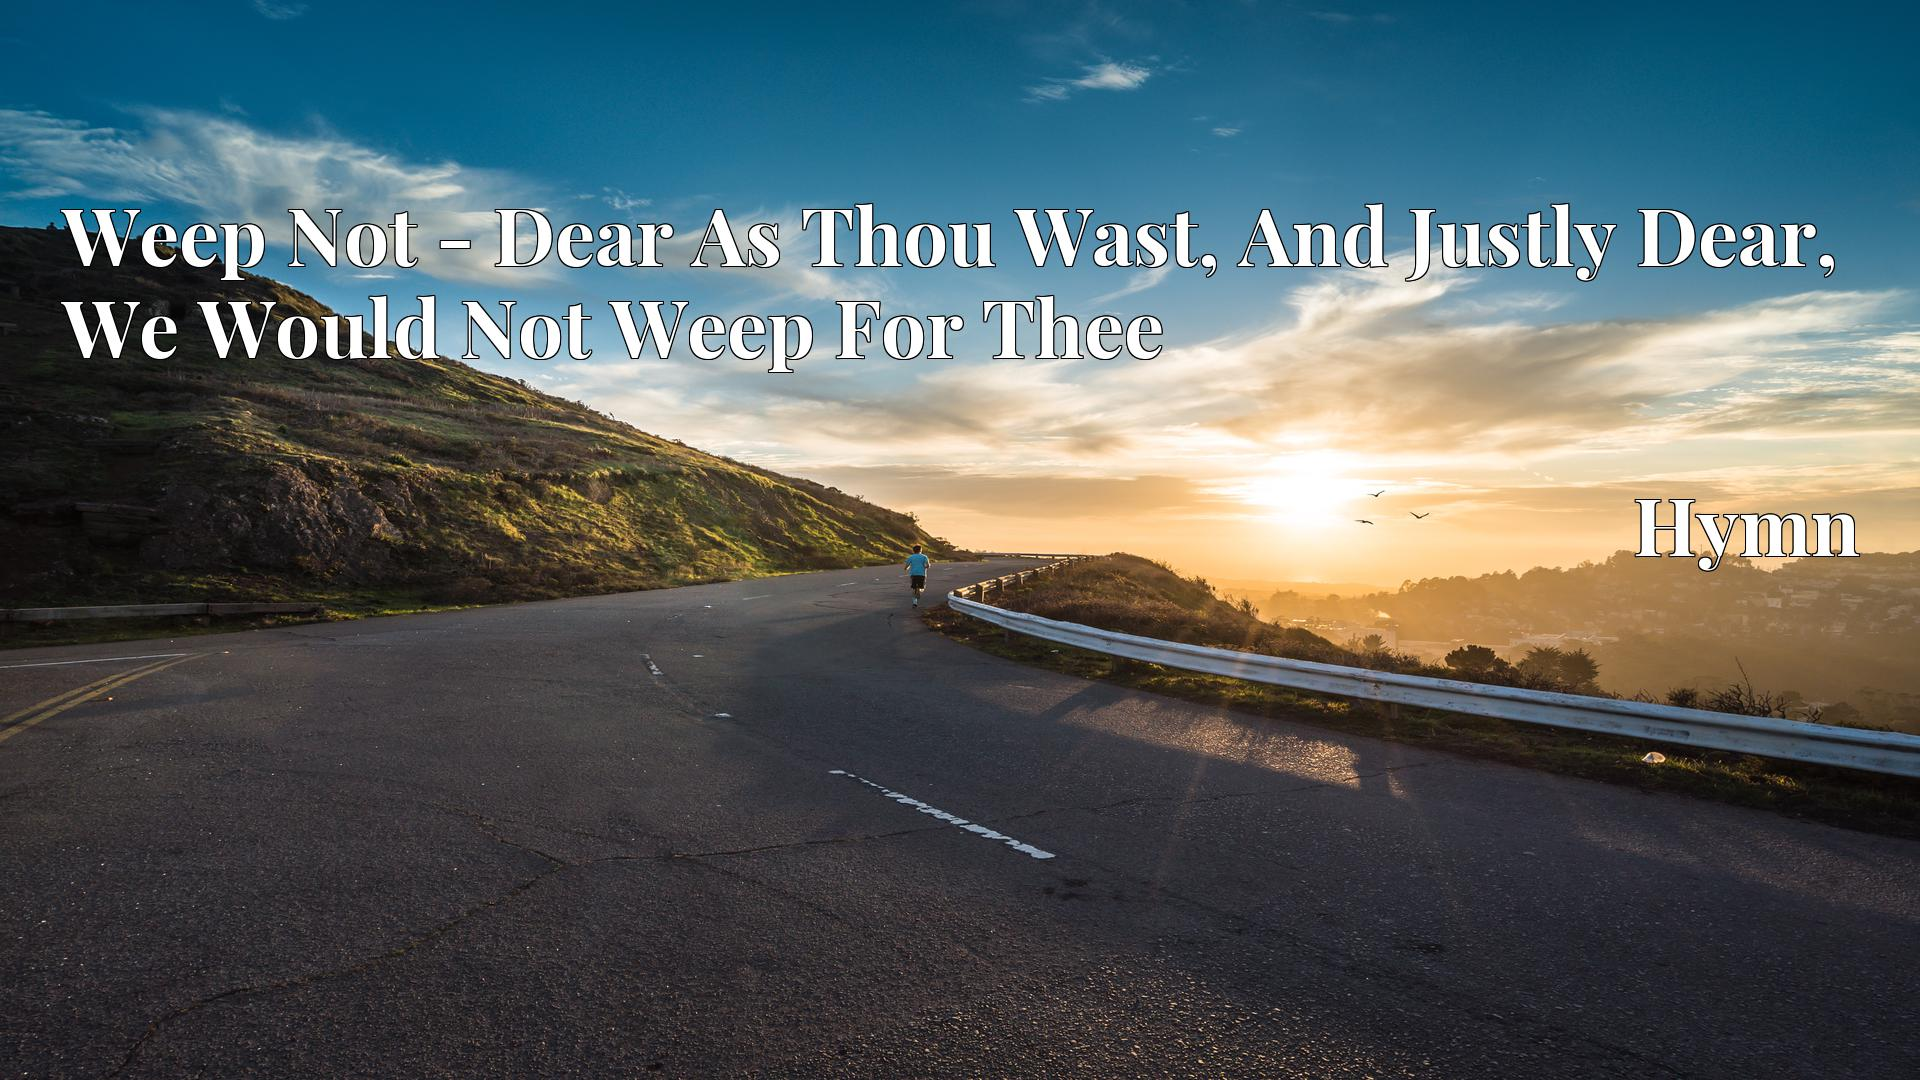 Weep Not - Dear As Thou Wast, And Justly Dear, We Would Not Weep For Thee - Hymn